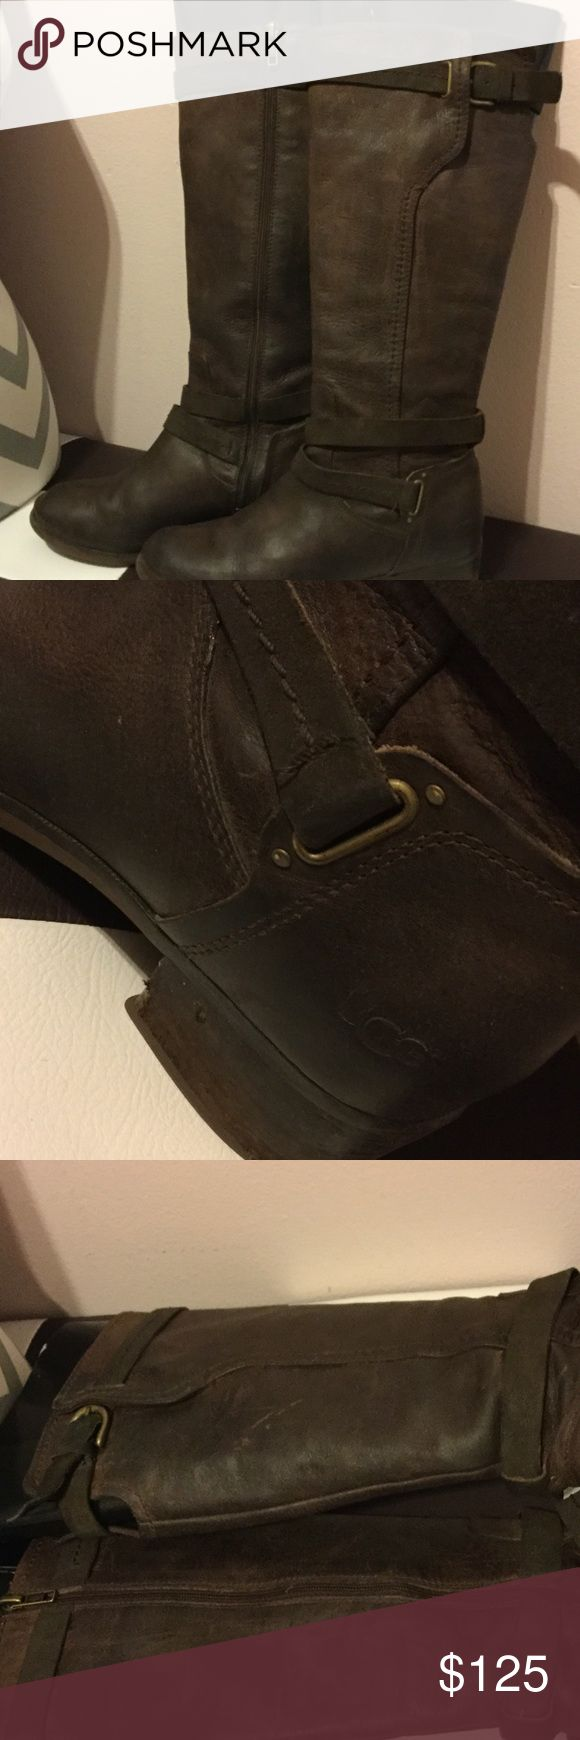 Ugg Darcie boots 7.5W These have been worn in great condition minor flaws on heels extremely comfortable and classy 👢size 7.5 women's brown retail $295 UGG Shoes Heeled Boots